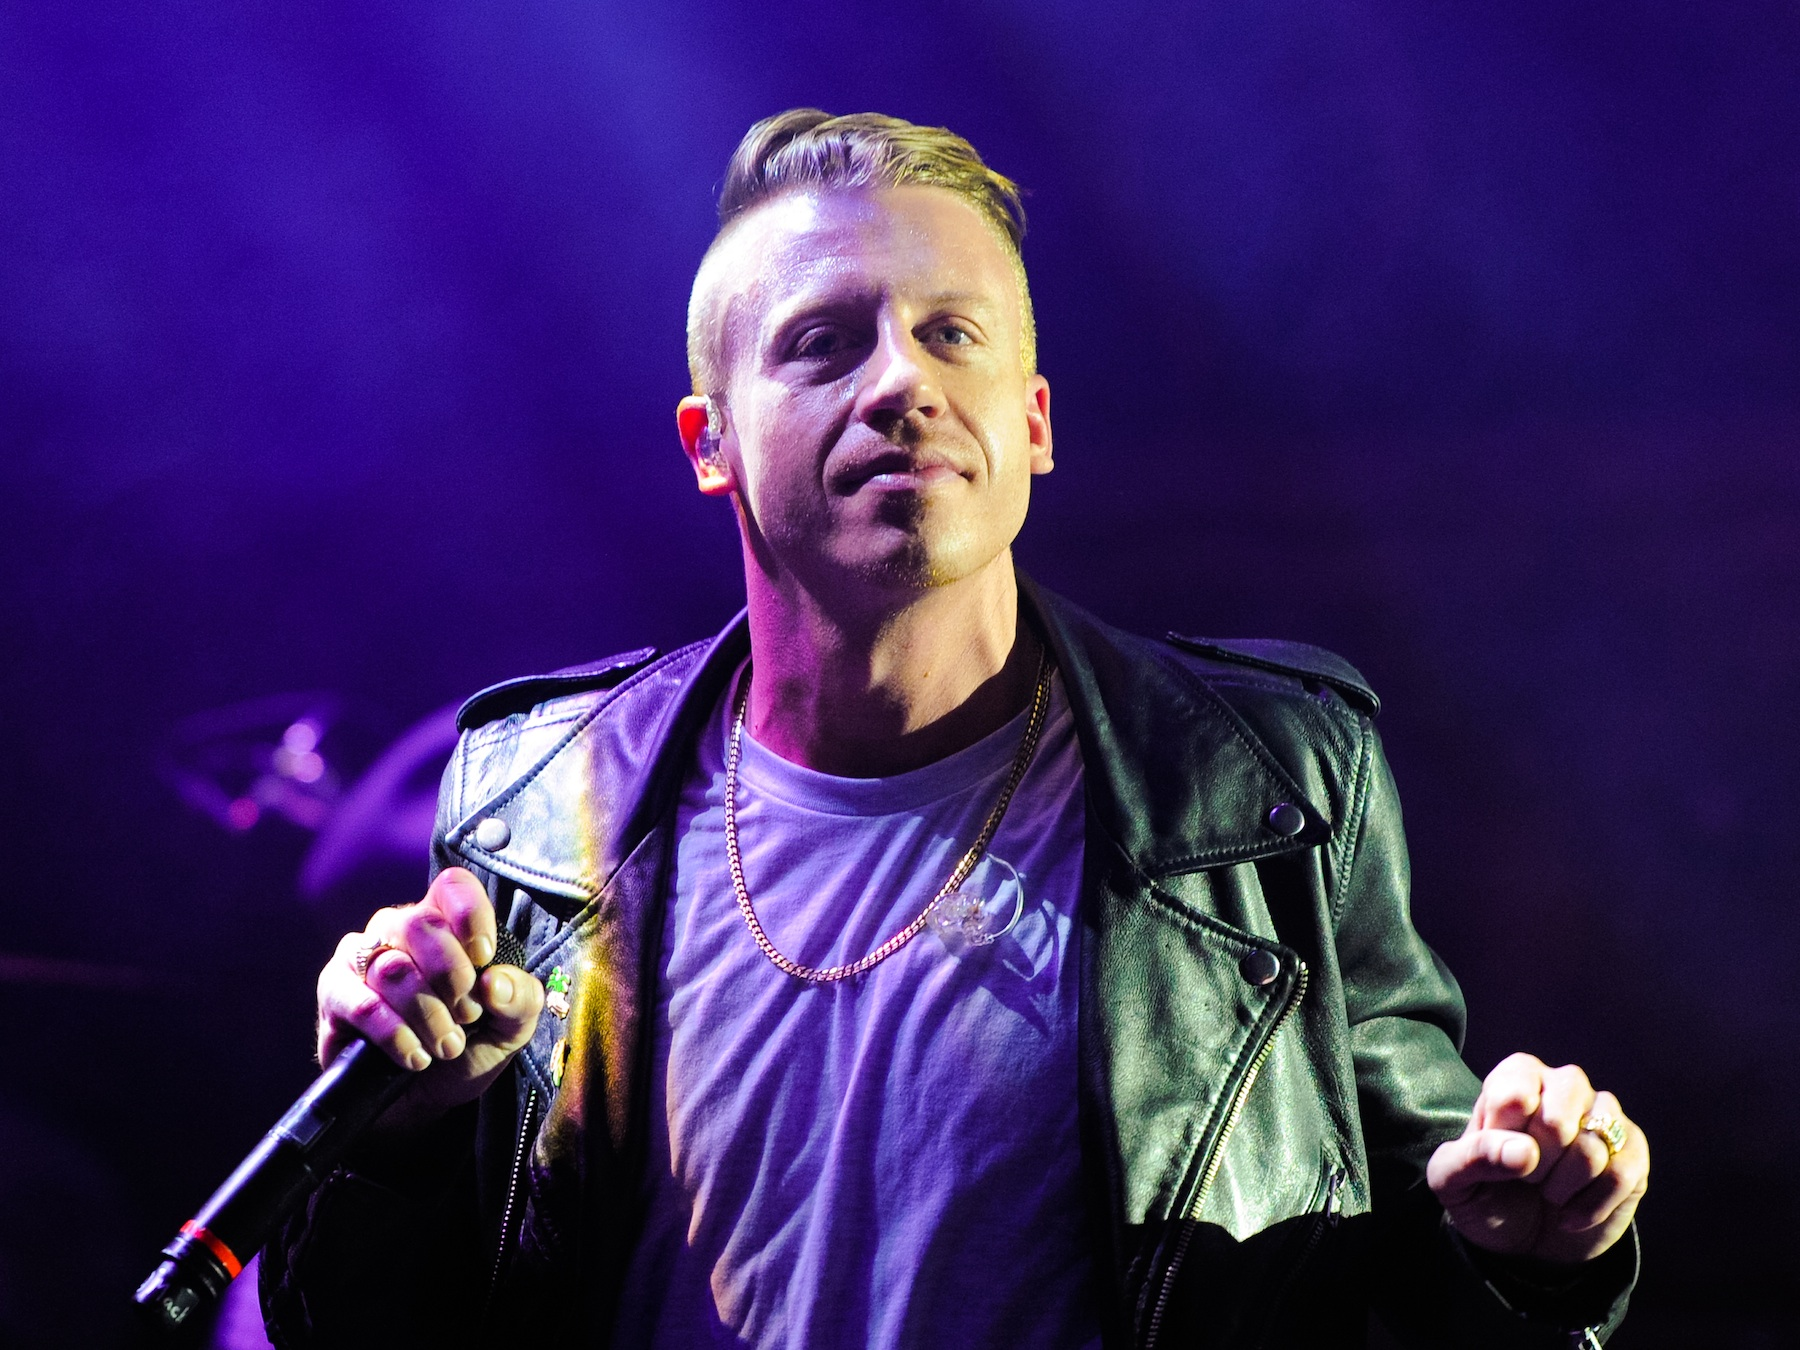 Grammys to Feature Mass Wedding During Macklemore Set